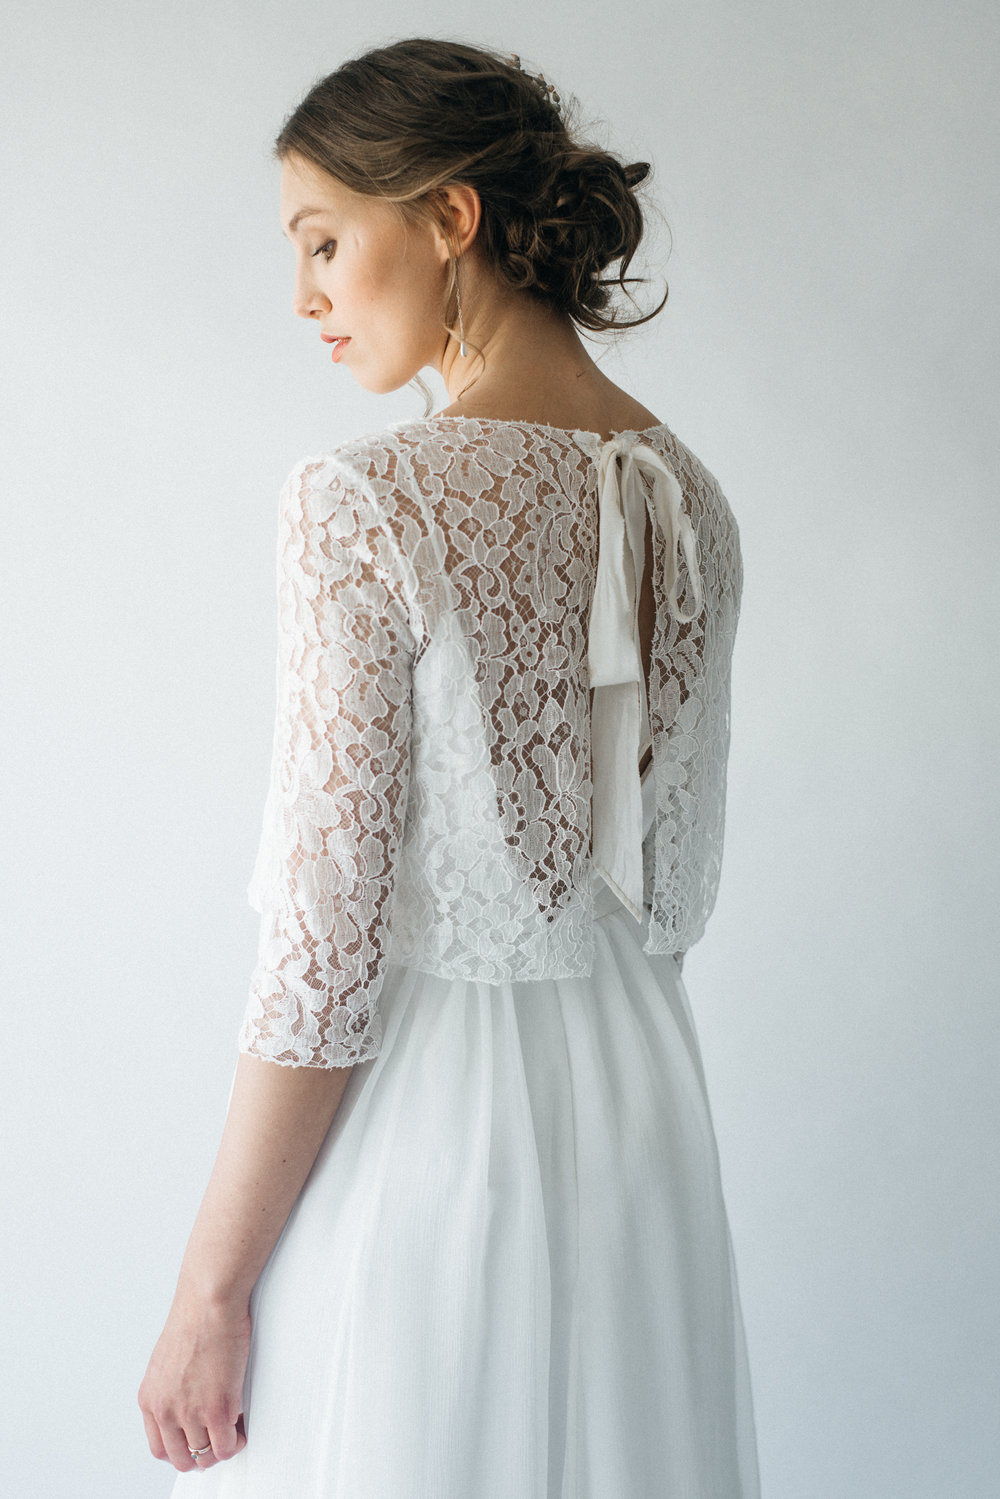 Handmade Lace Bridal Top